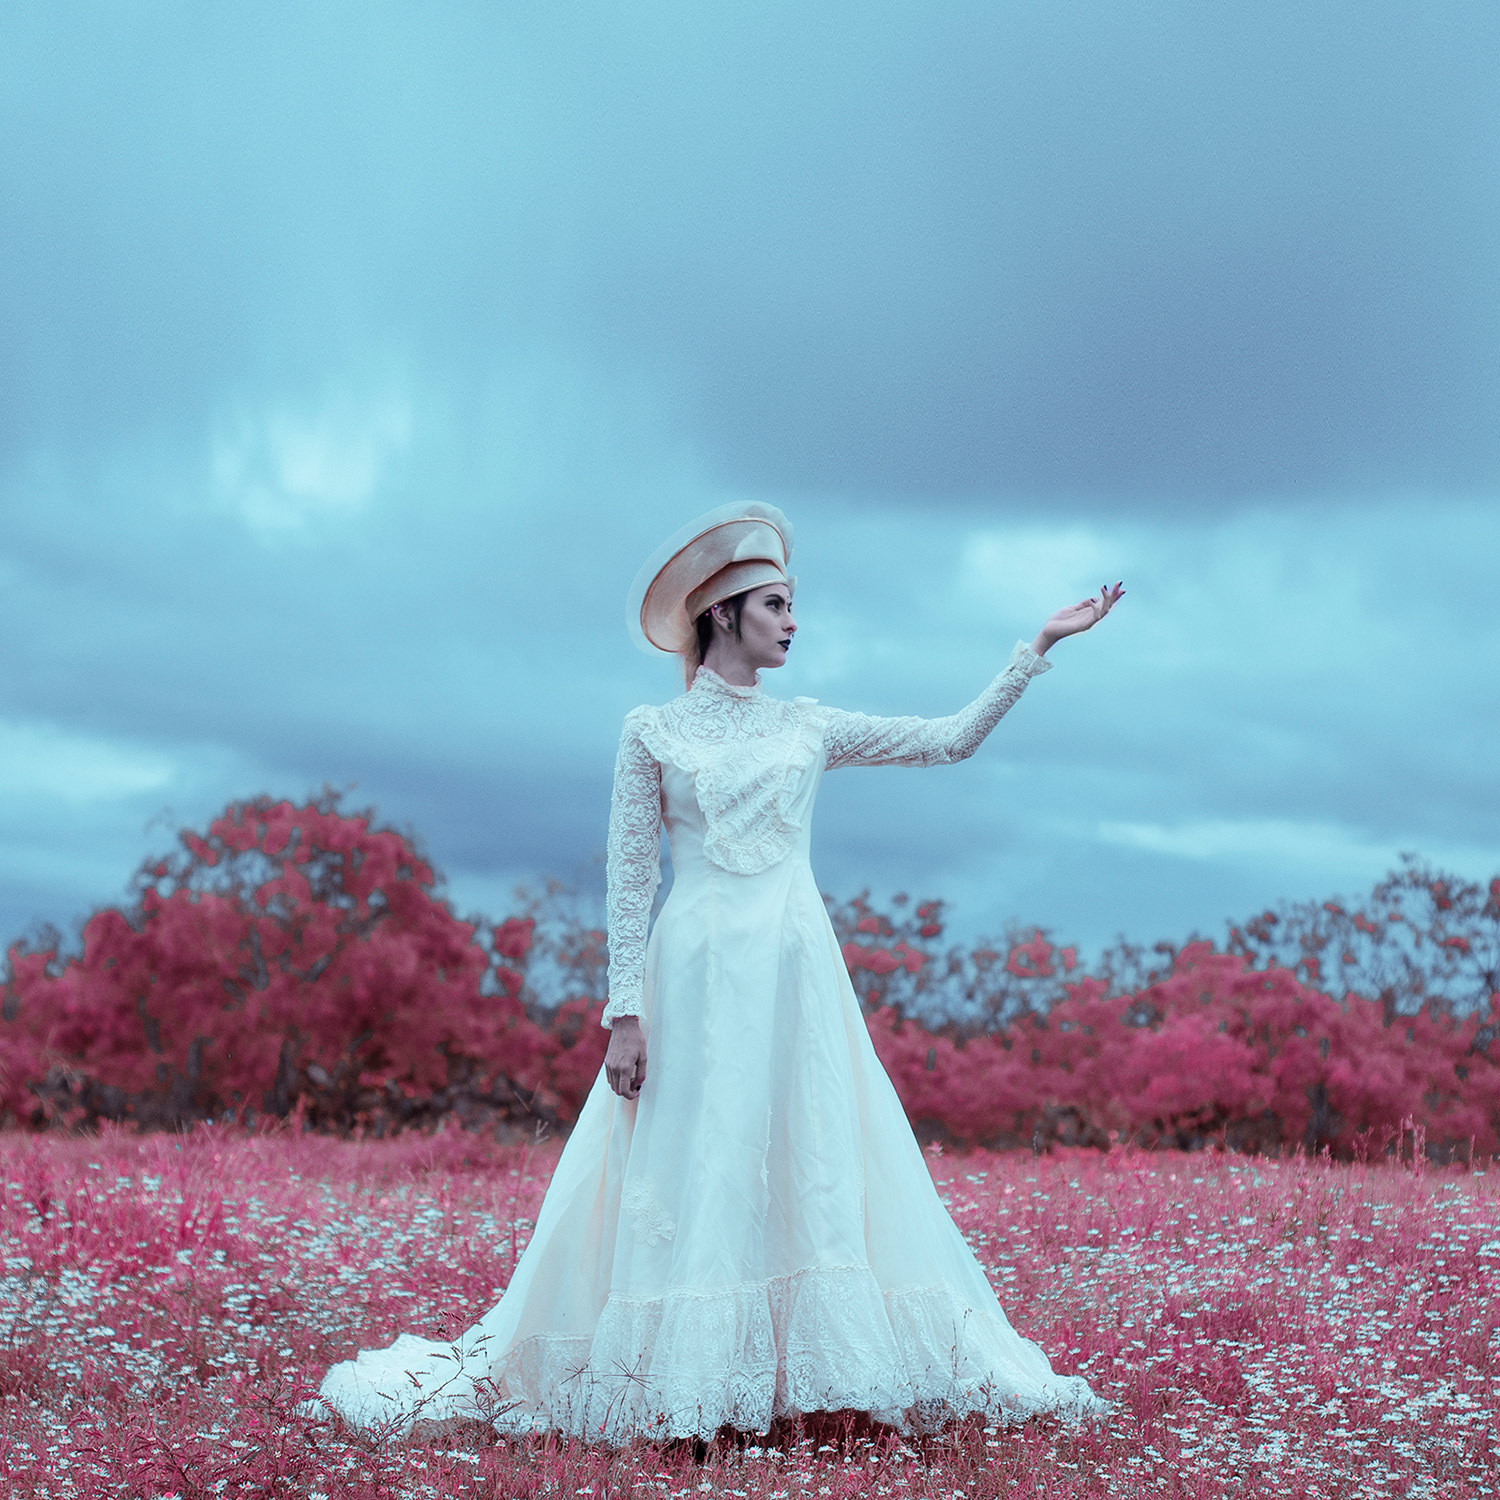 Christopher McKenney - white figure in pink field